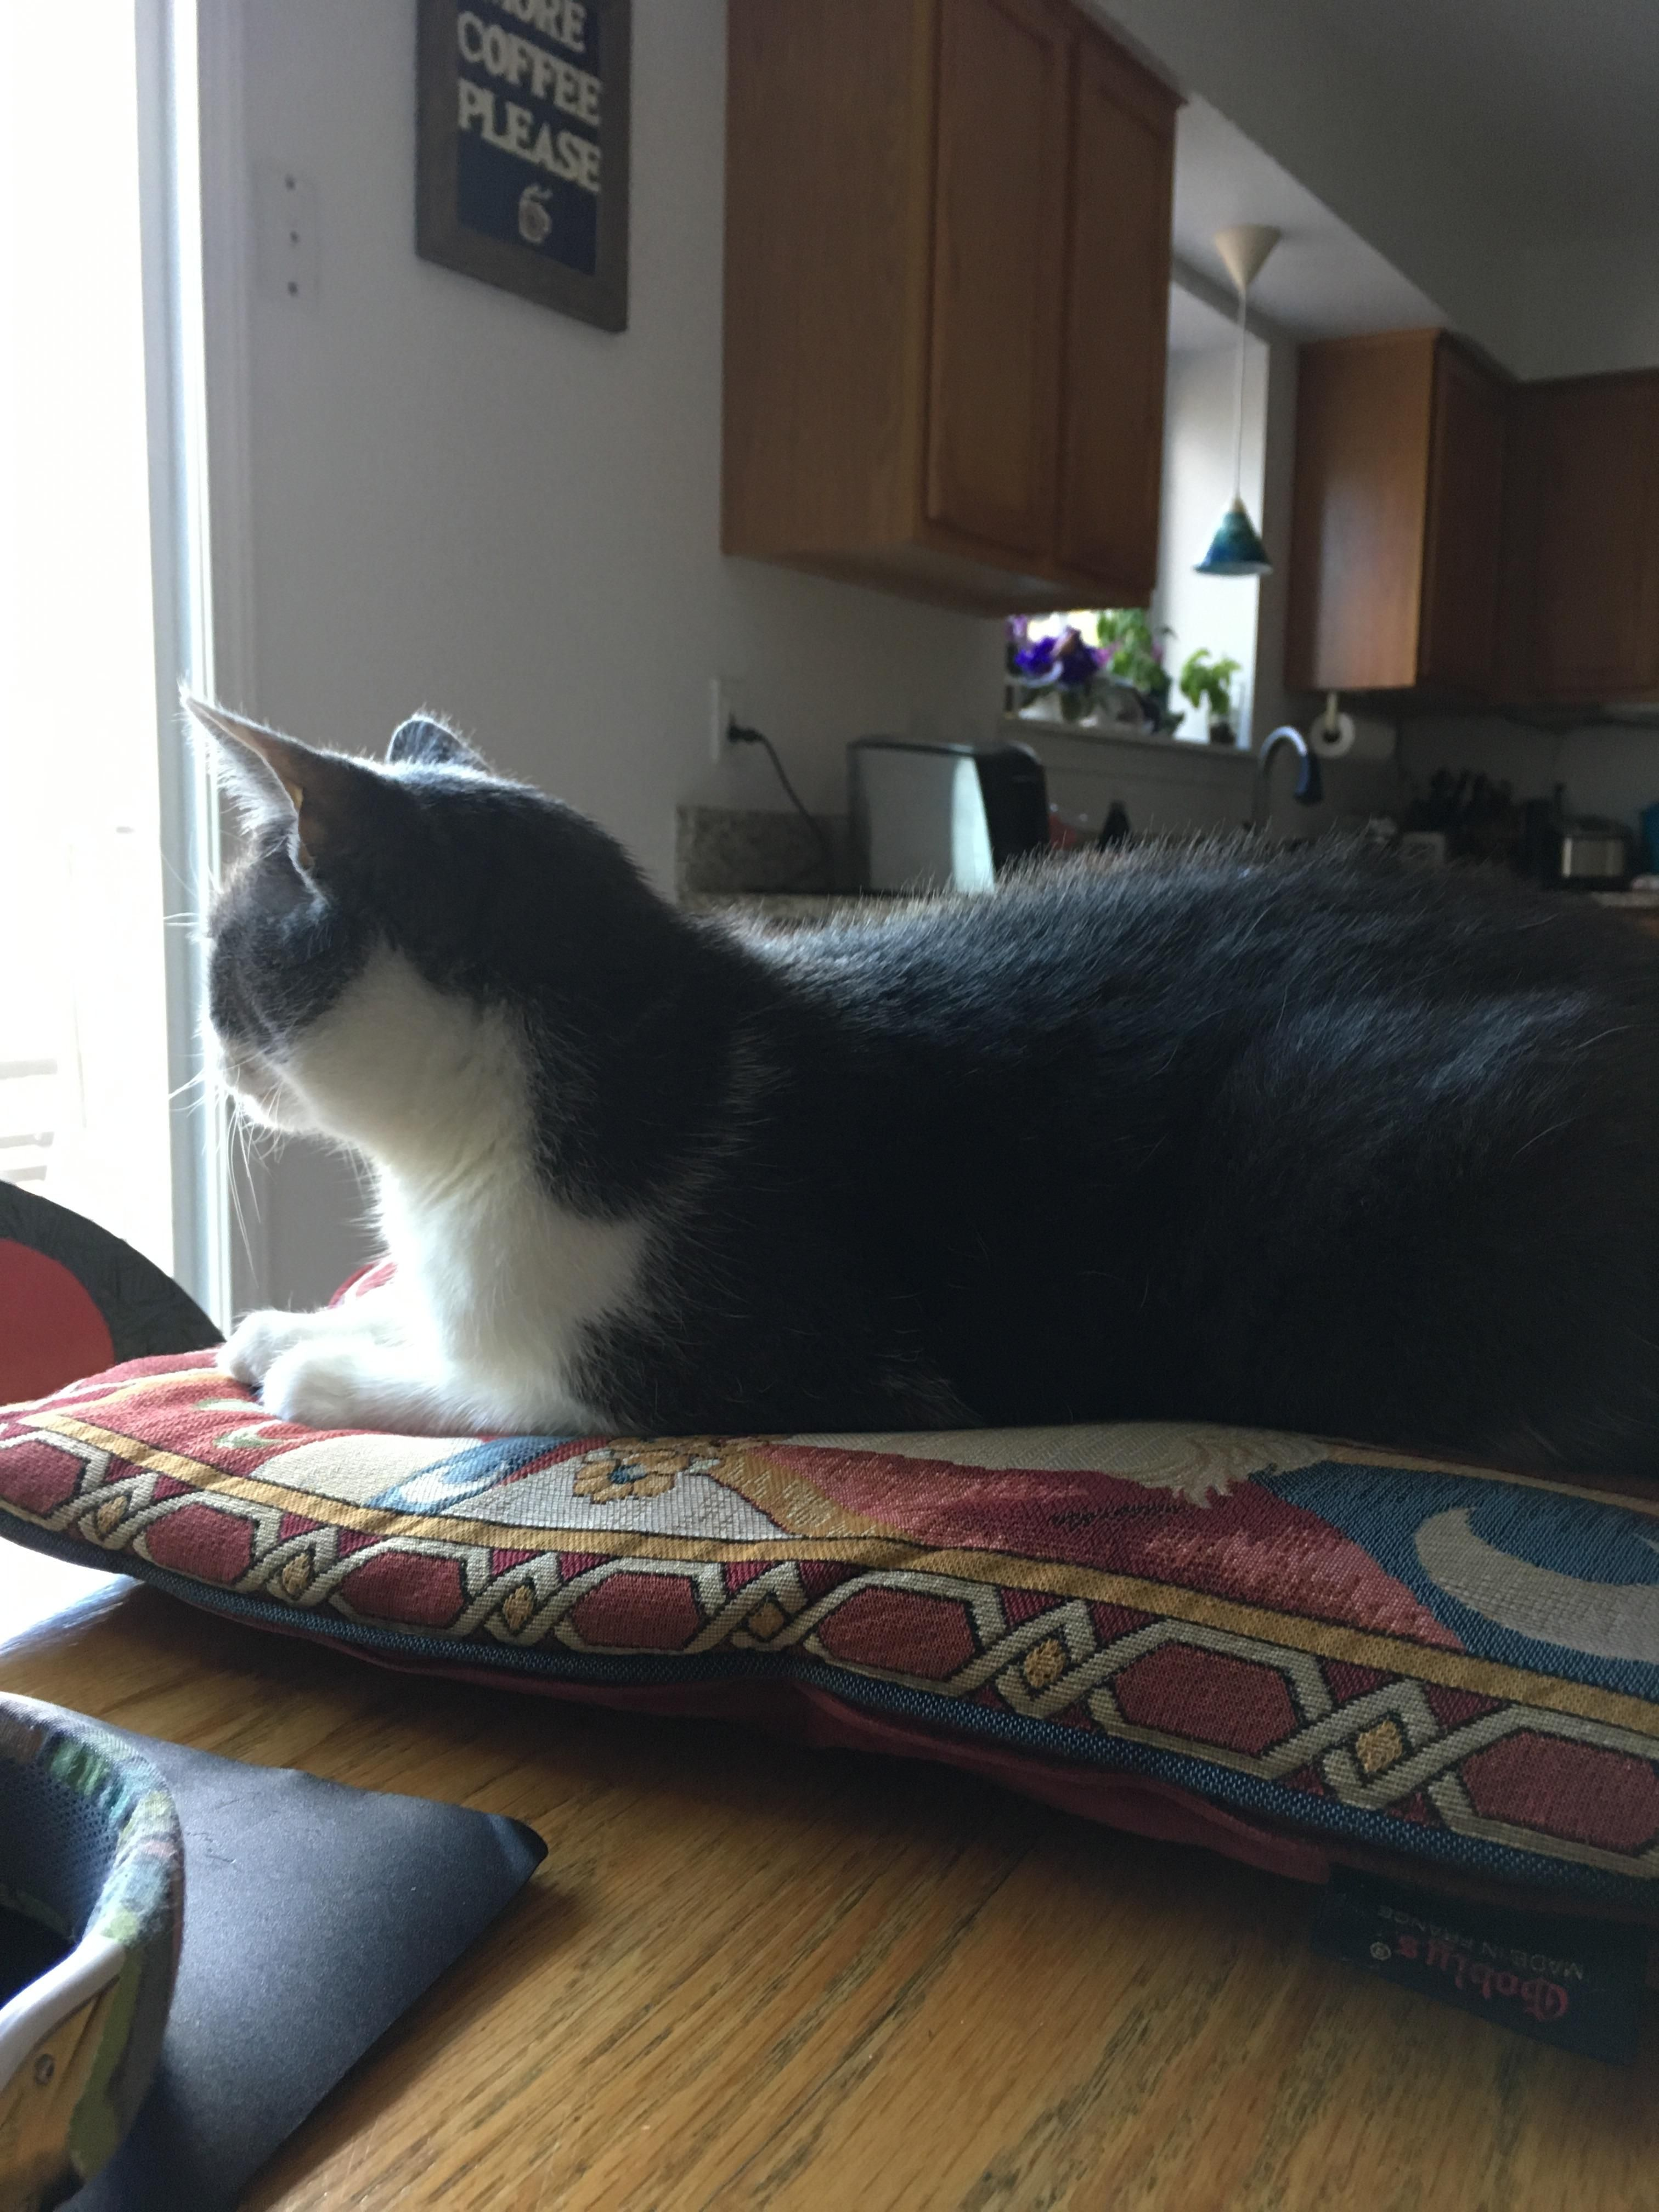 I put a pillow on the table so my cat could oversee my work. http://ift.tt/2pQDmyn